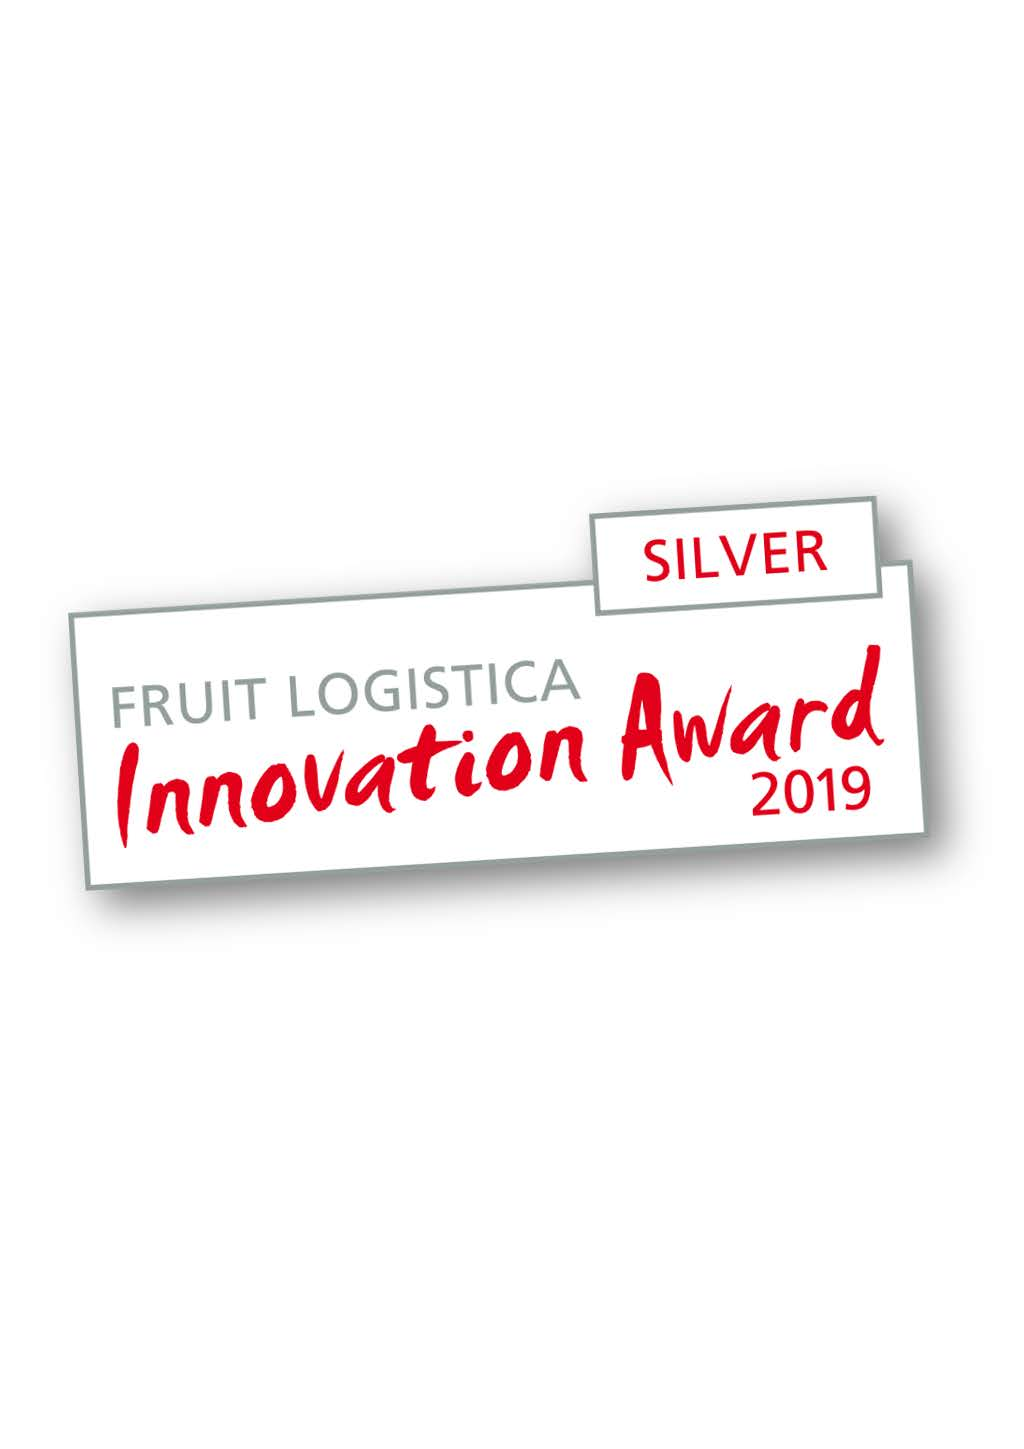 Softripe Gewinner des Innovation Awards der Fruit Logistica 2019 in Silber